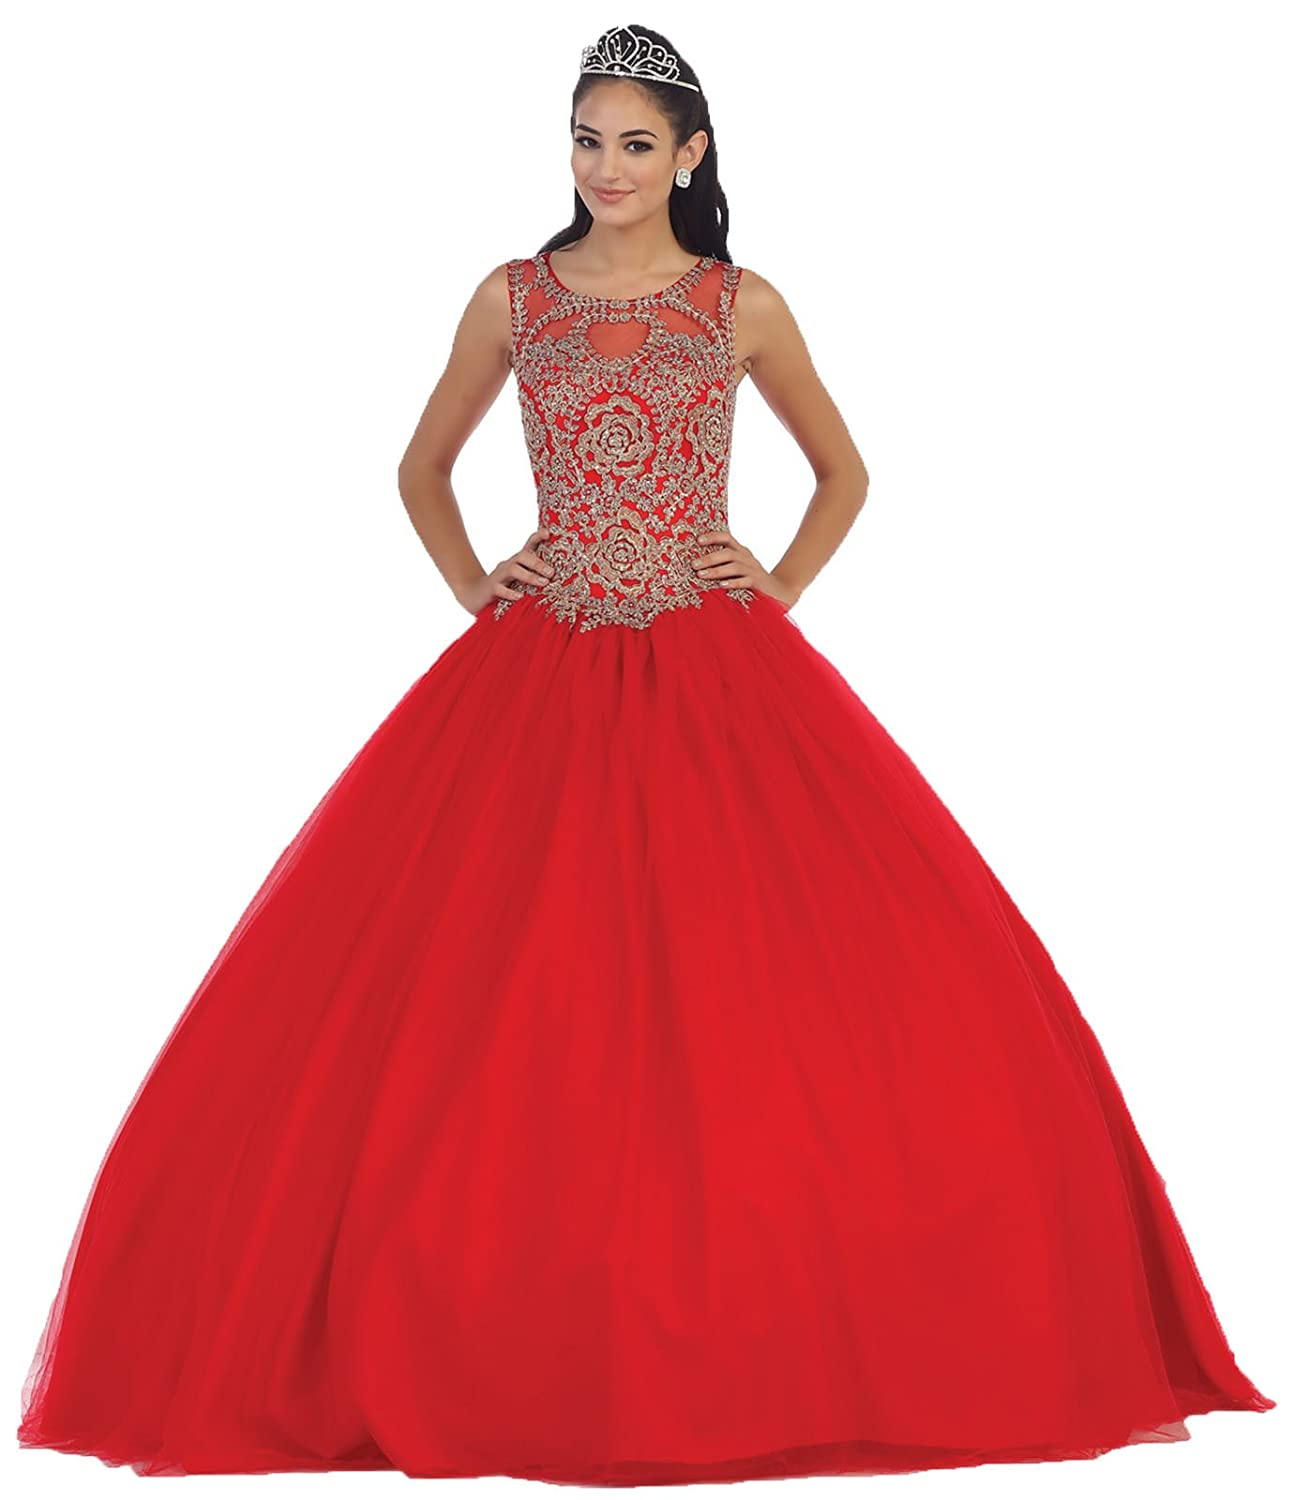 fbbcd6619bc Layla K LK72 Sleeveless Quinceanera Ball Gown at Amazon Women s Clothing  store